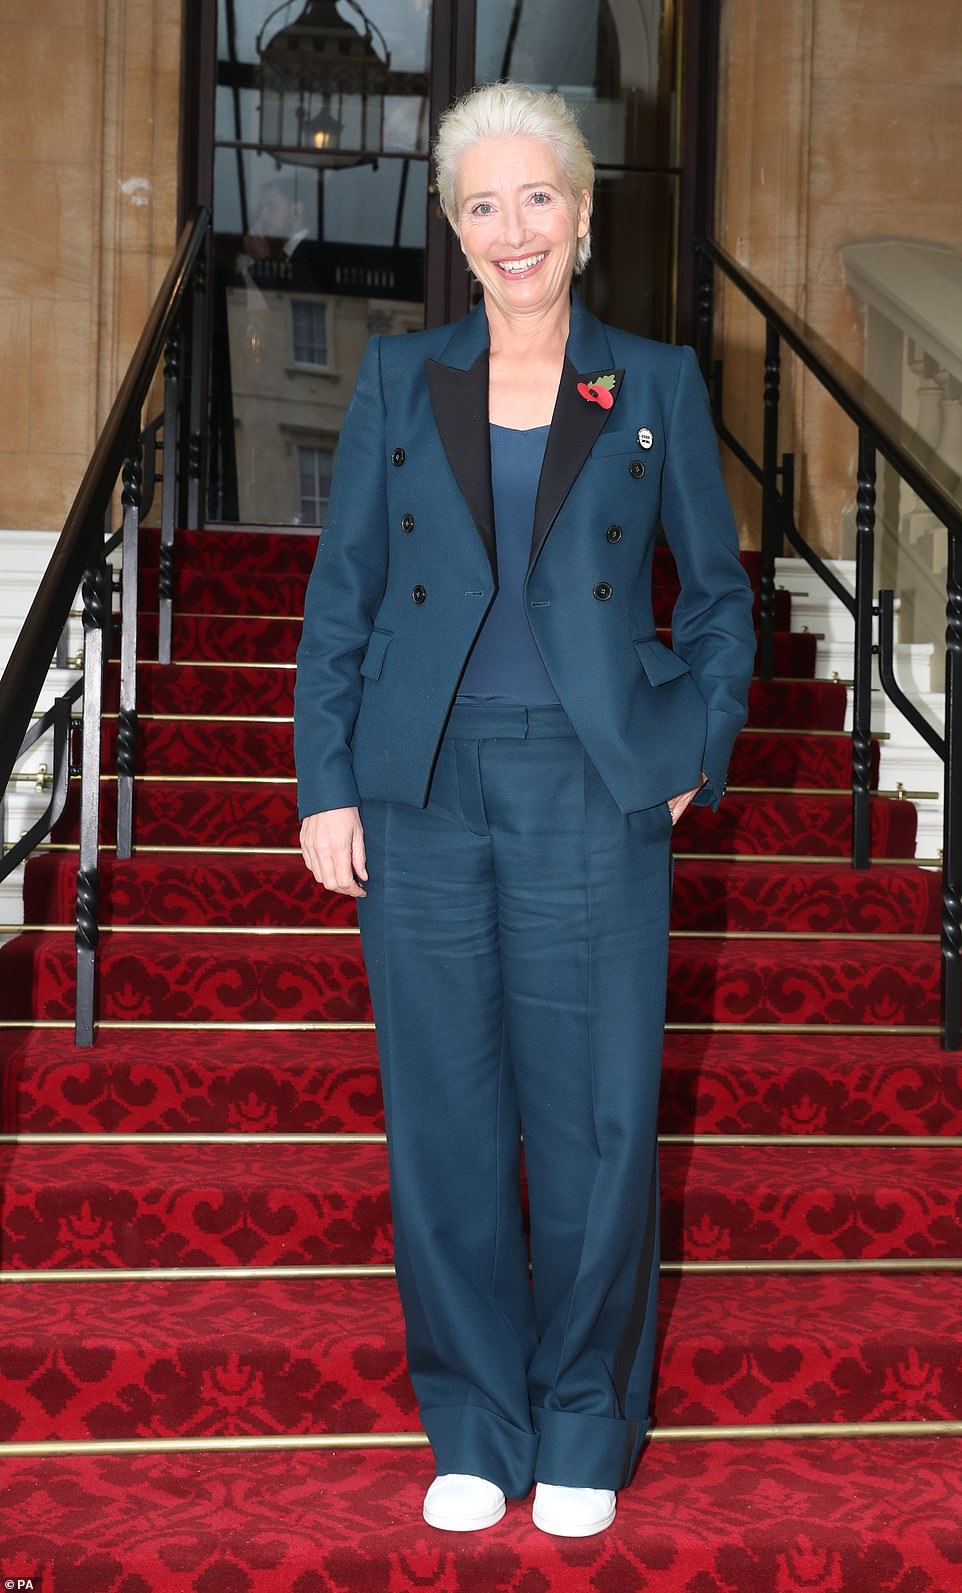 Dressed the part: The Sense and Sensibility actress, 59, looked polished for the ceremony in a turquoise trouser suit characterized by contrasting black lapels and matching pants lining